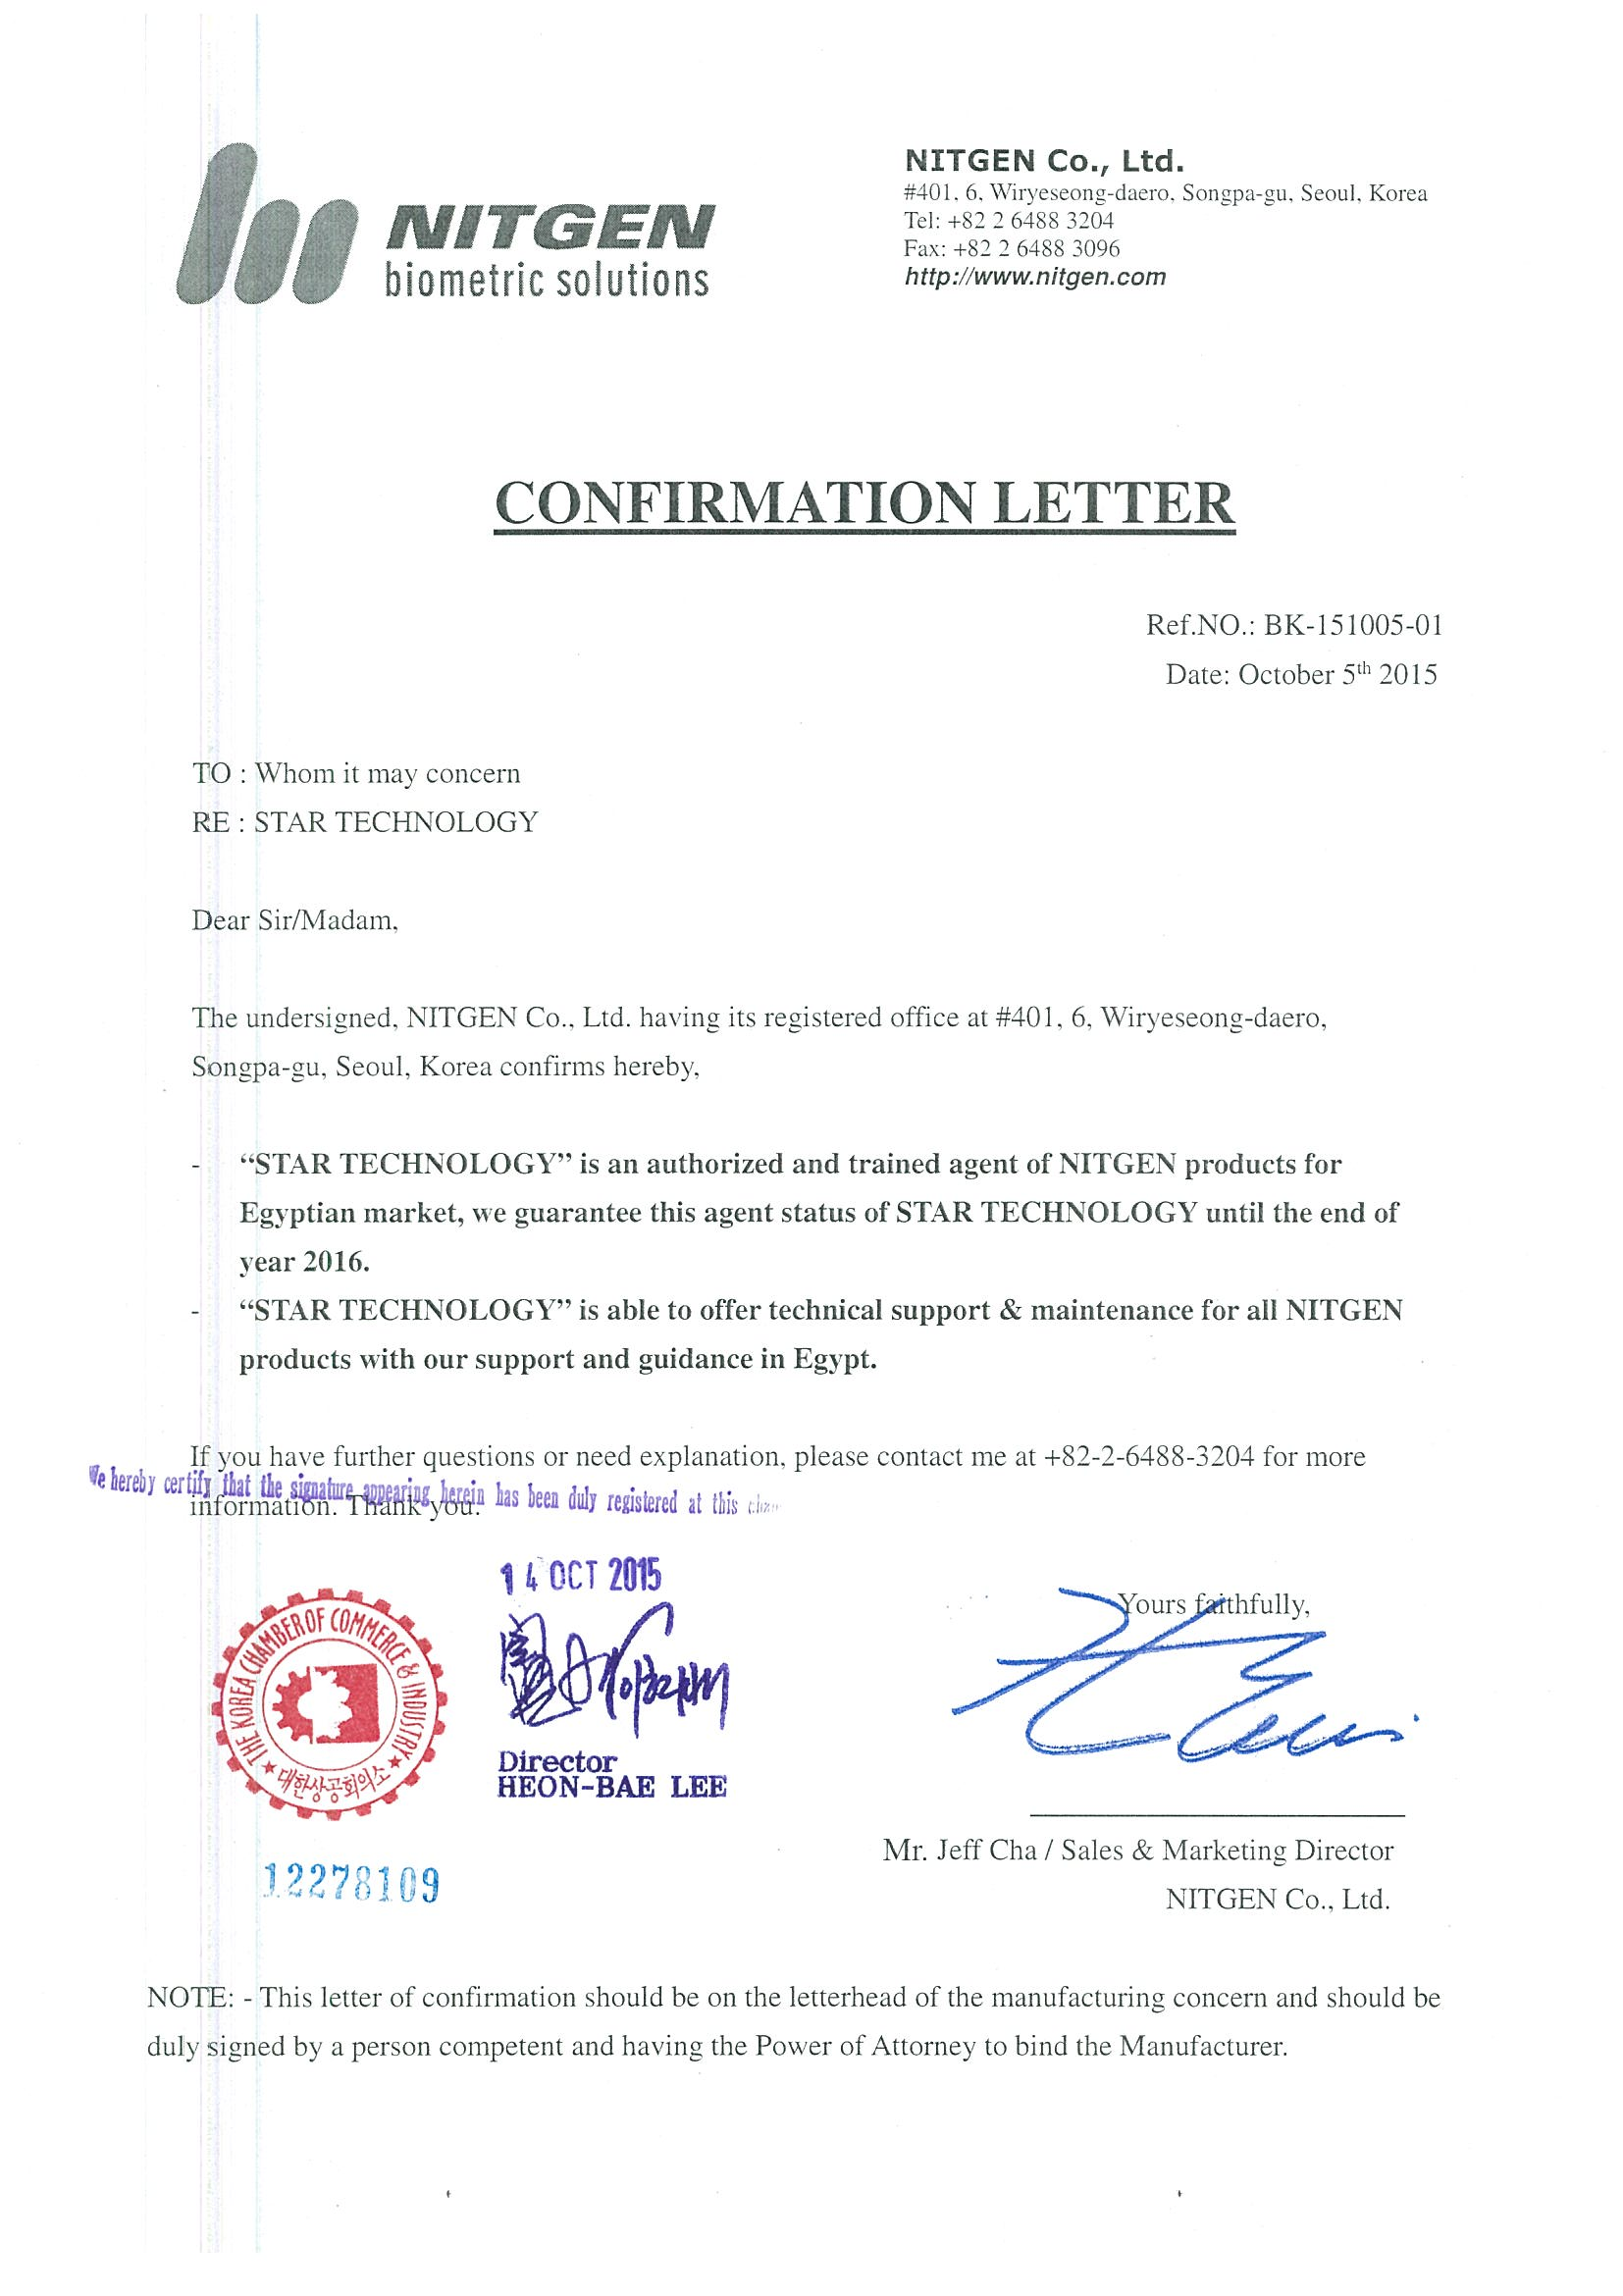 Nitgen Confirmation Letter